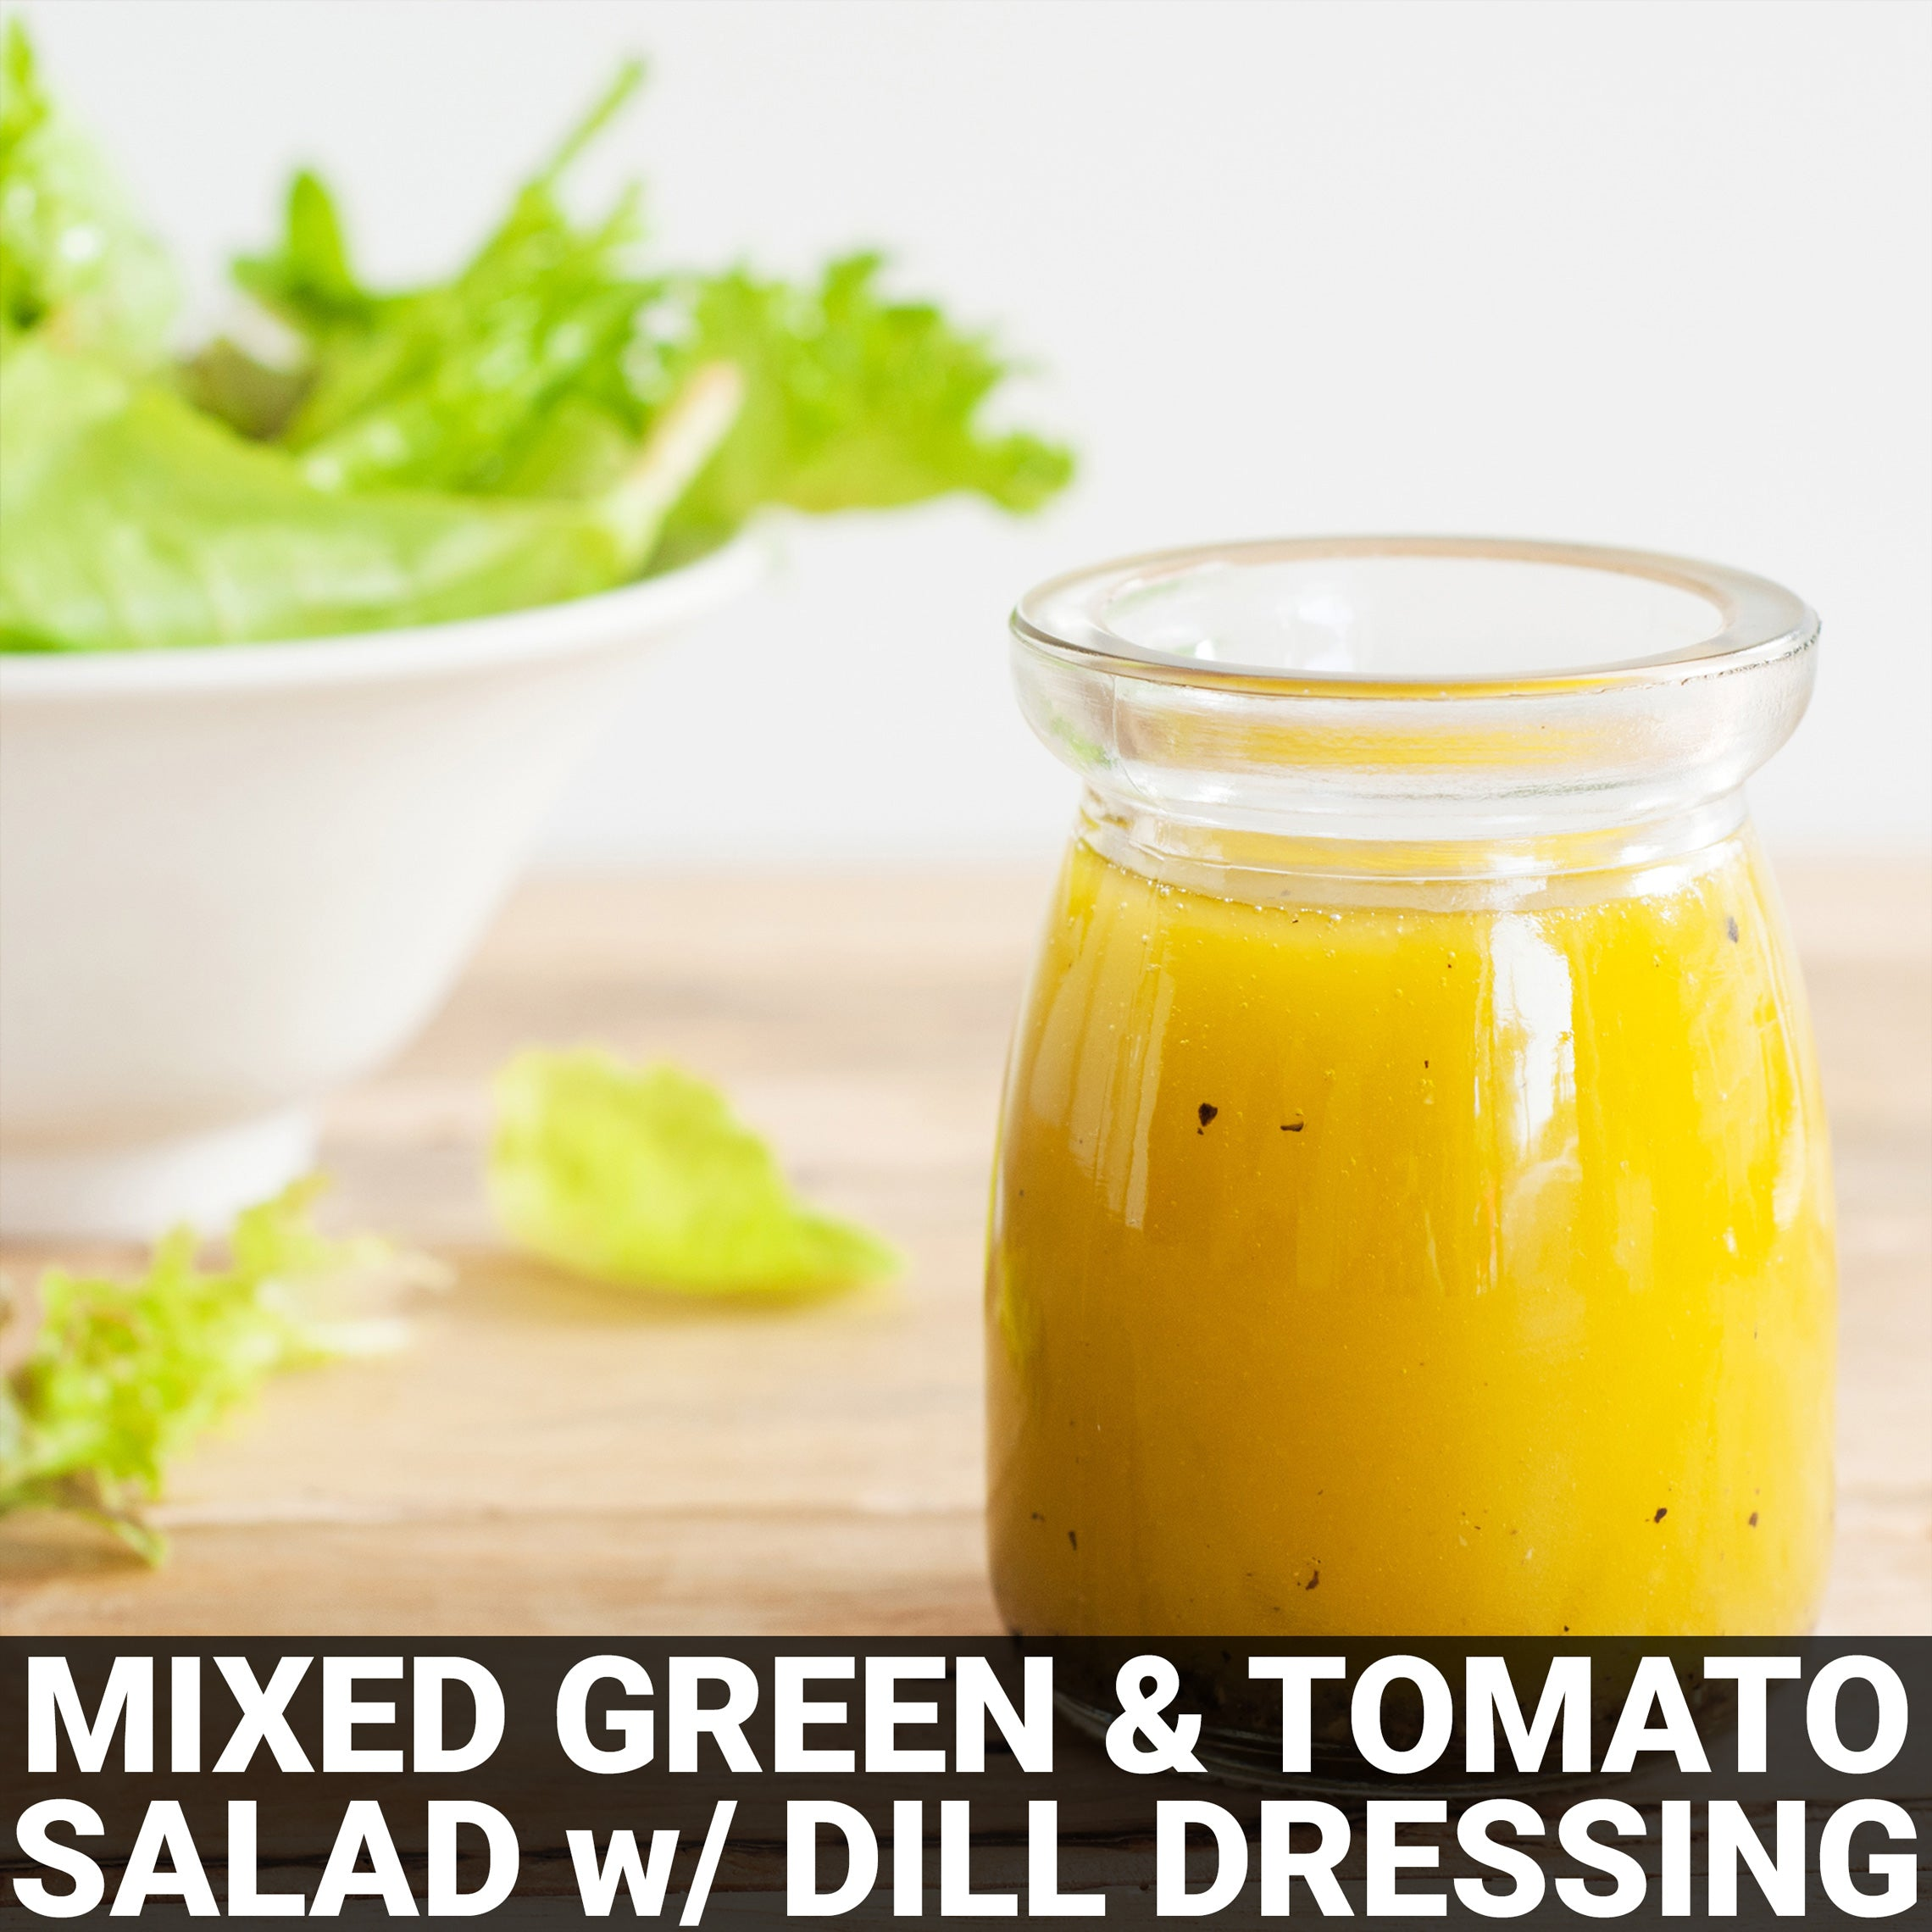 Mixed Green & Tomato Salad with Mango Dill Dressing Recipe - Foods Alive